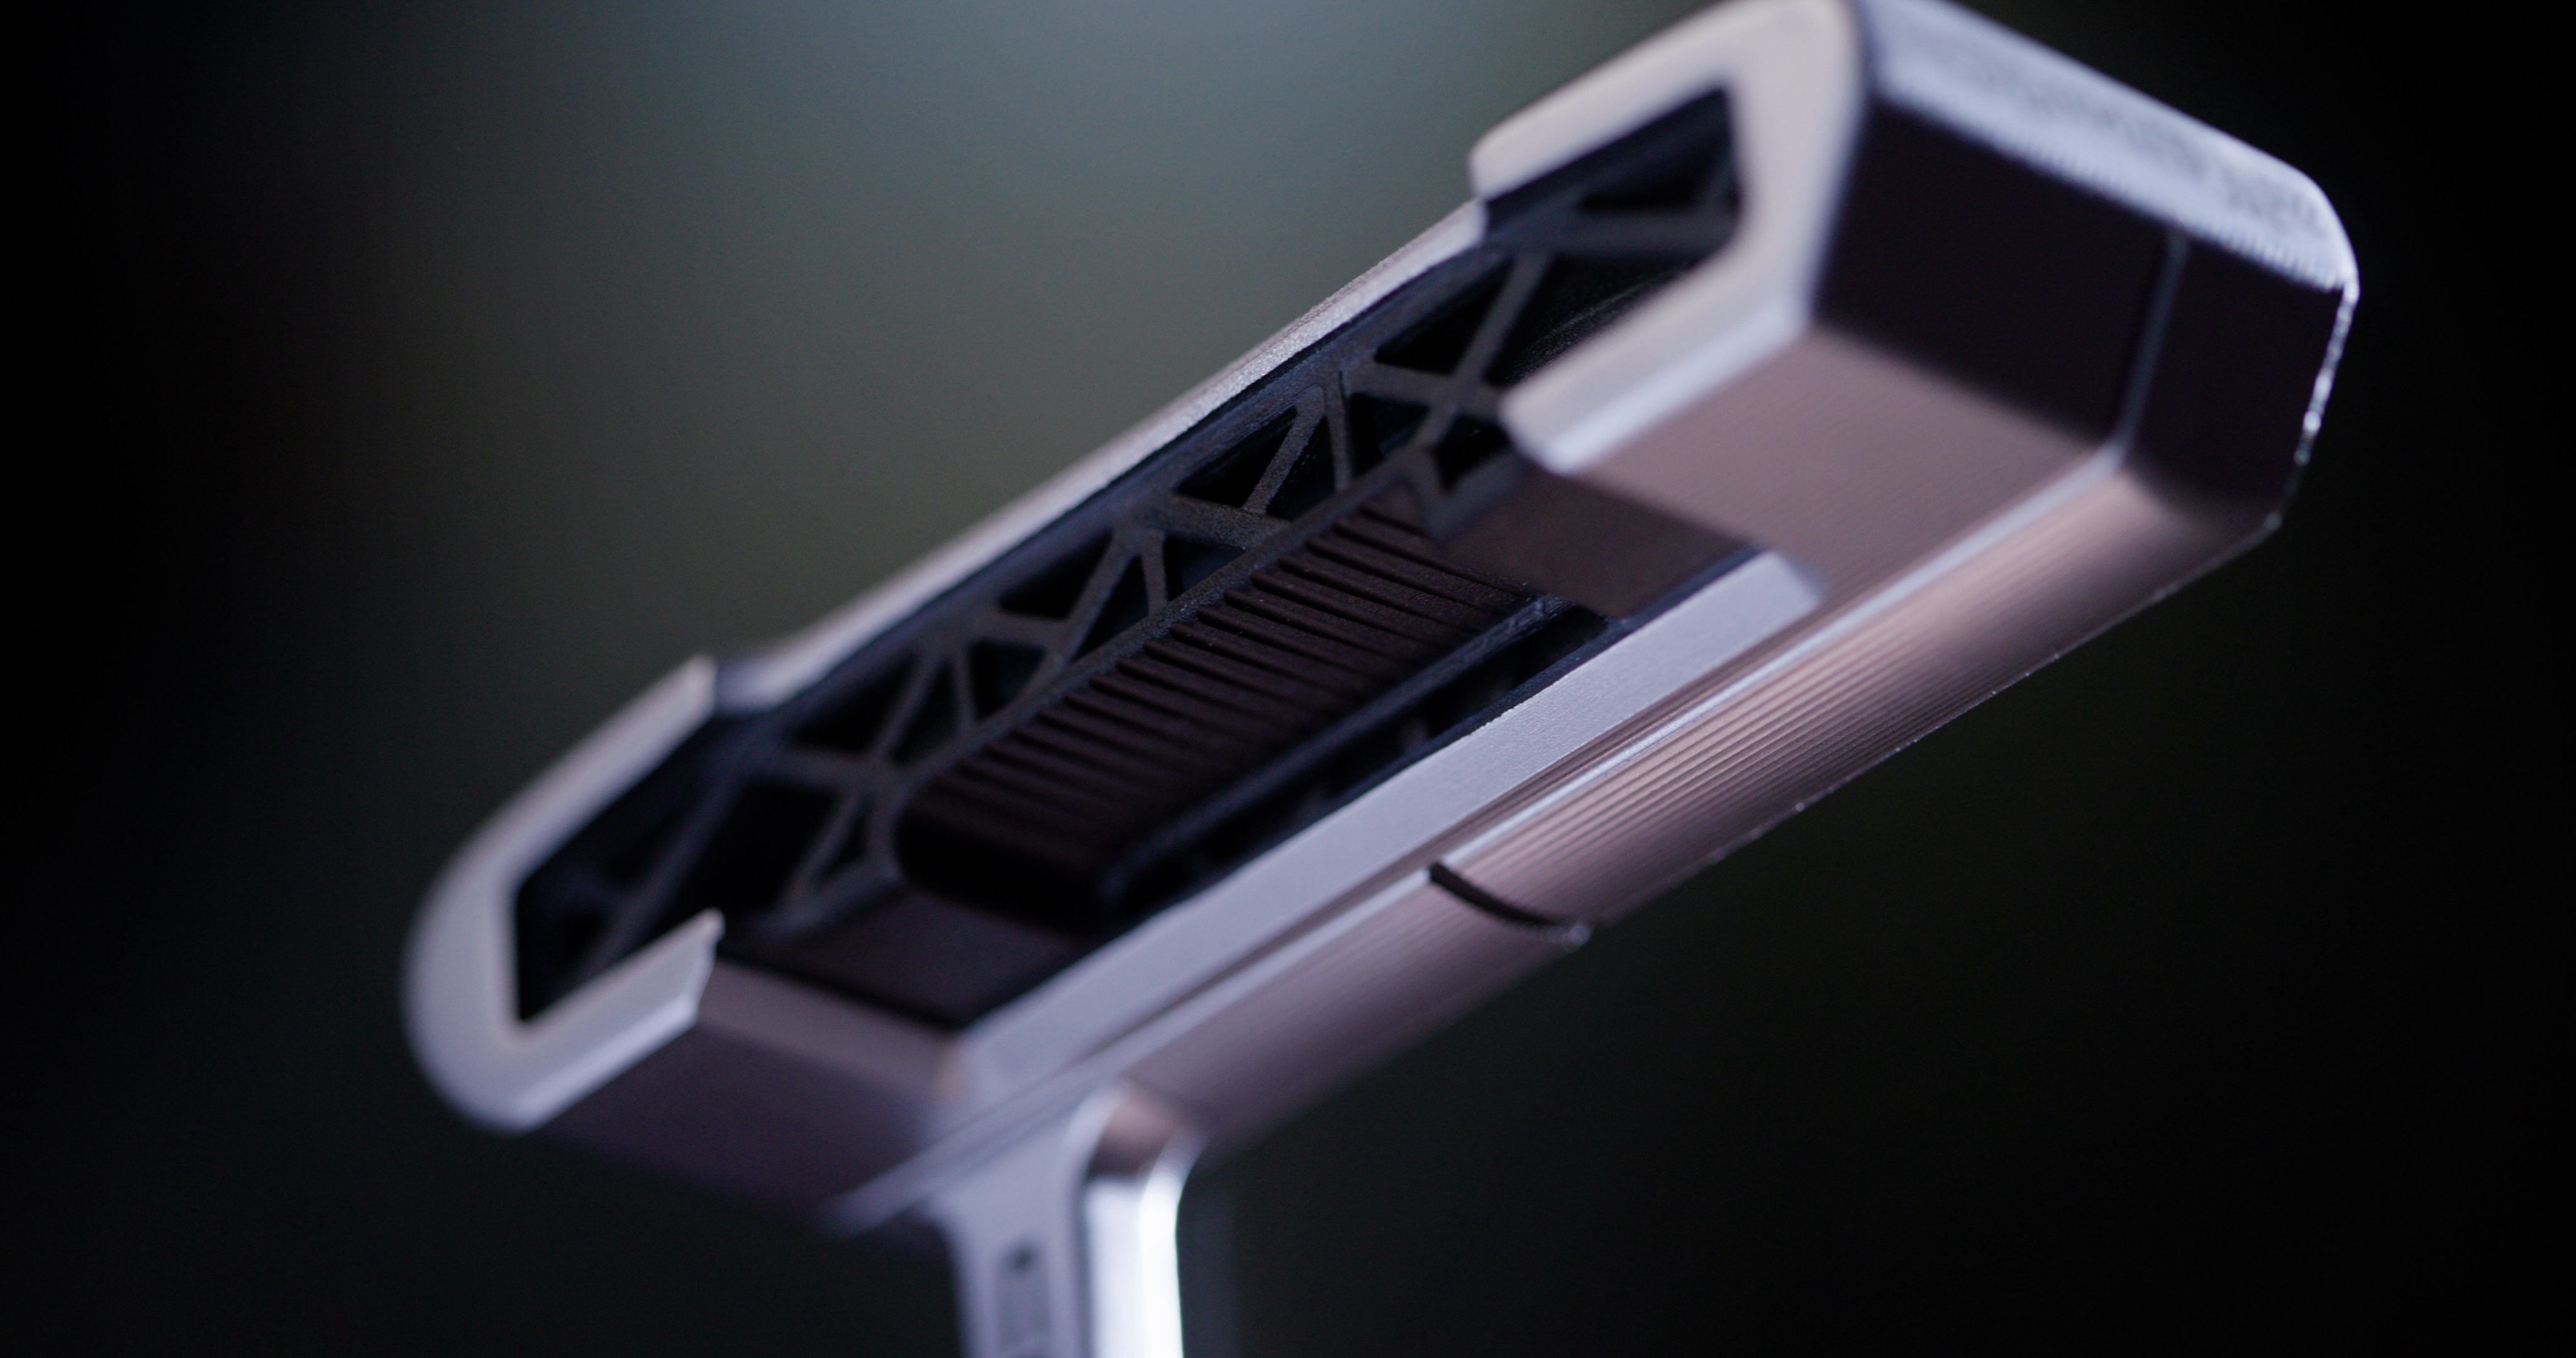 The KING Supersport-35 putter features a fully 3D printed metal body with an intricate lattice structure. Image Courtesy of COBRA Golf